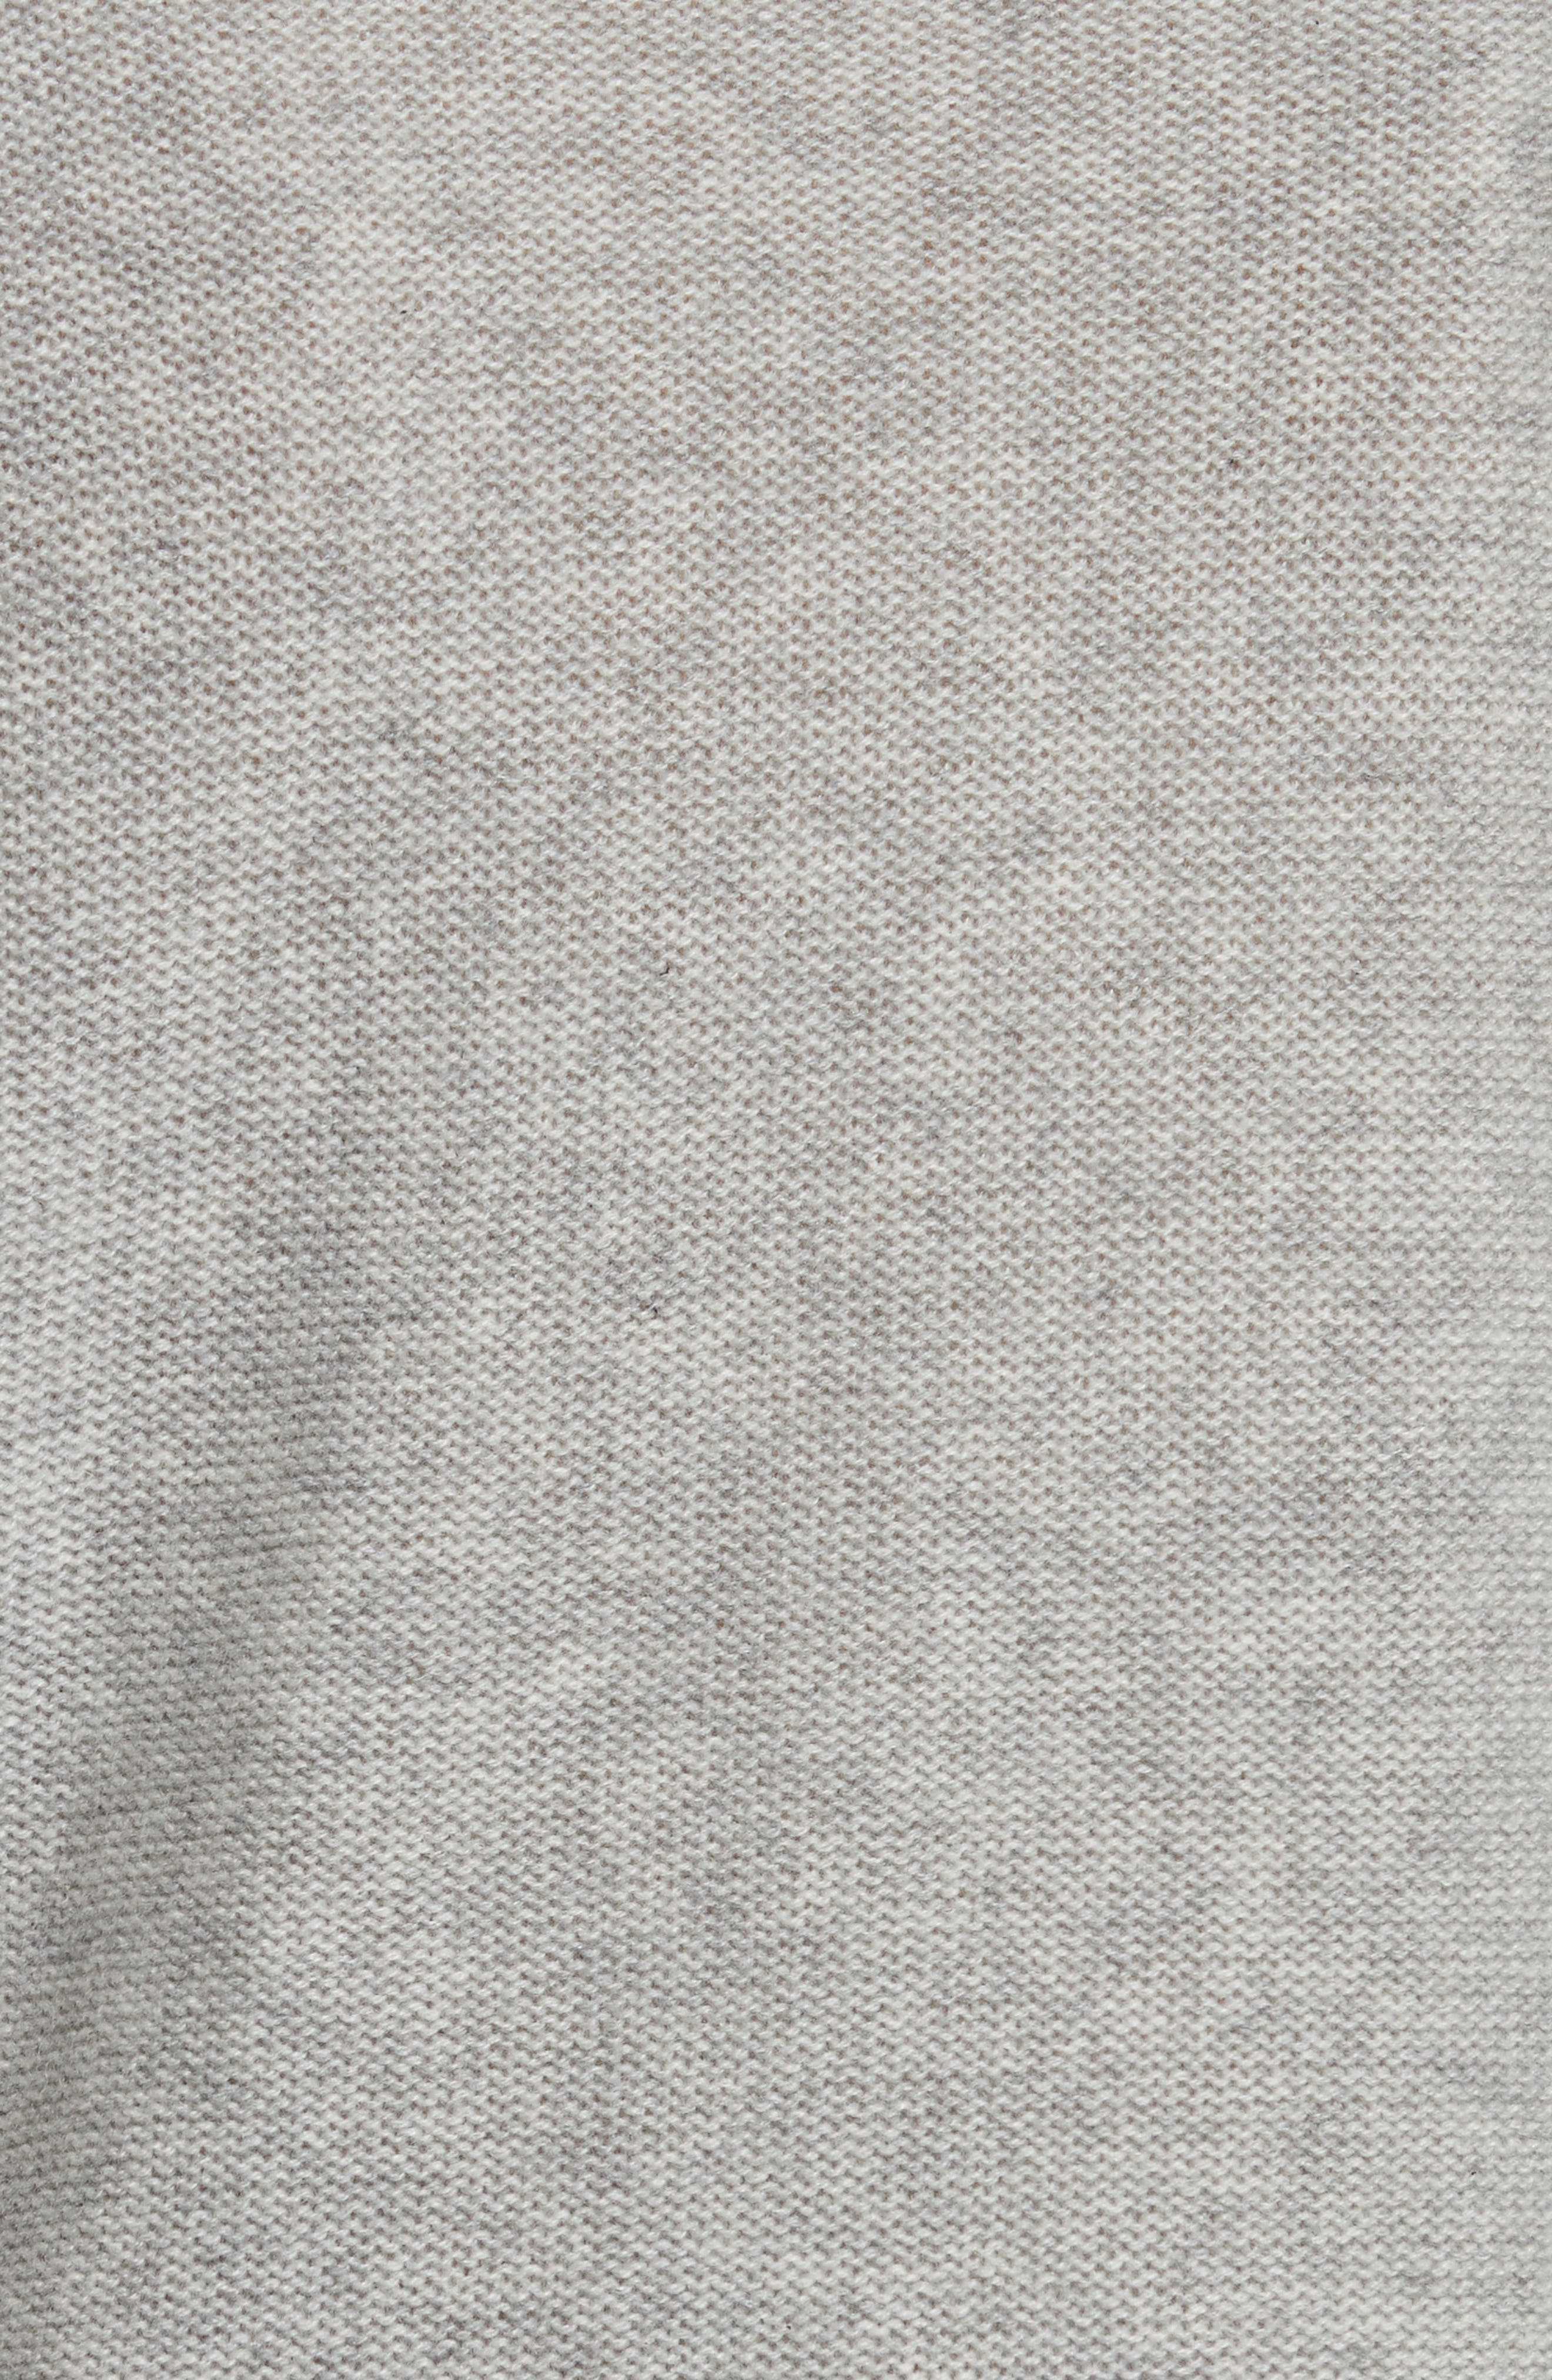 Kenna Cashmere Sweater,                             Alternate thumbnail 5, color,                             Grey